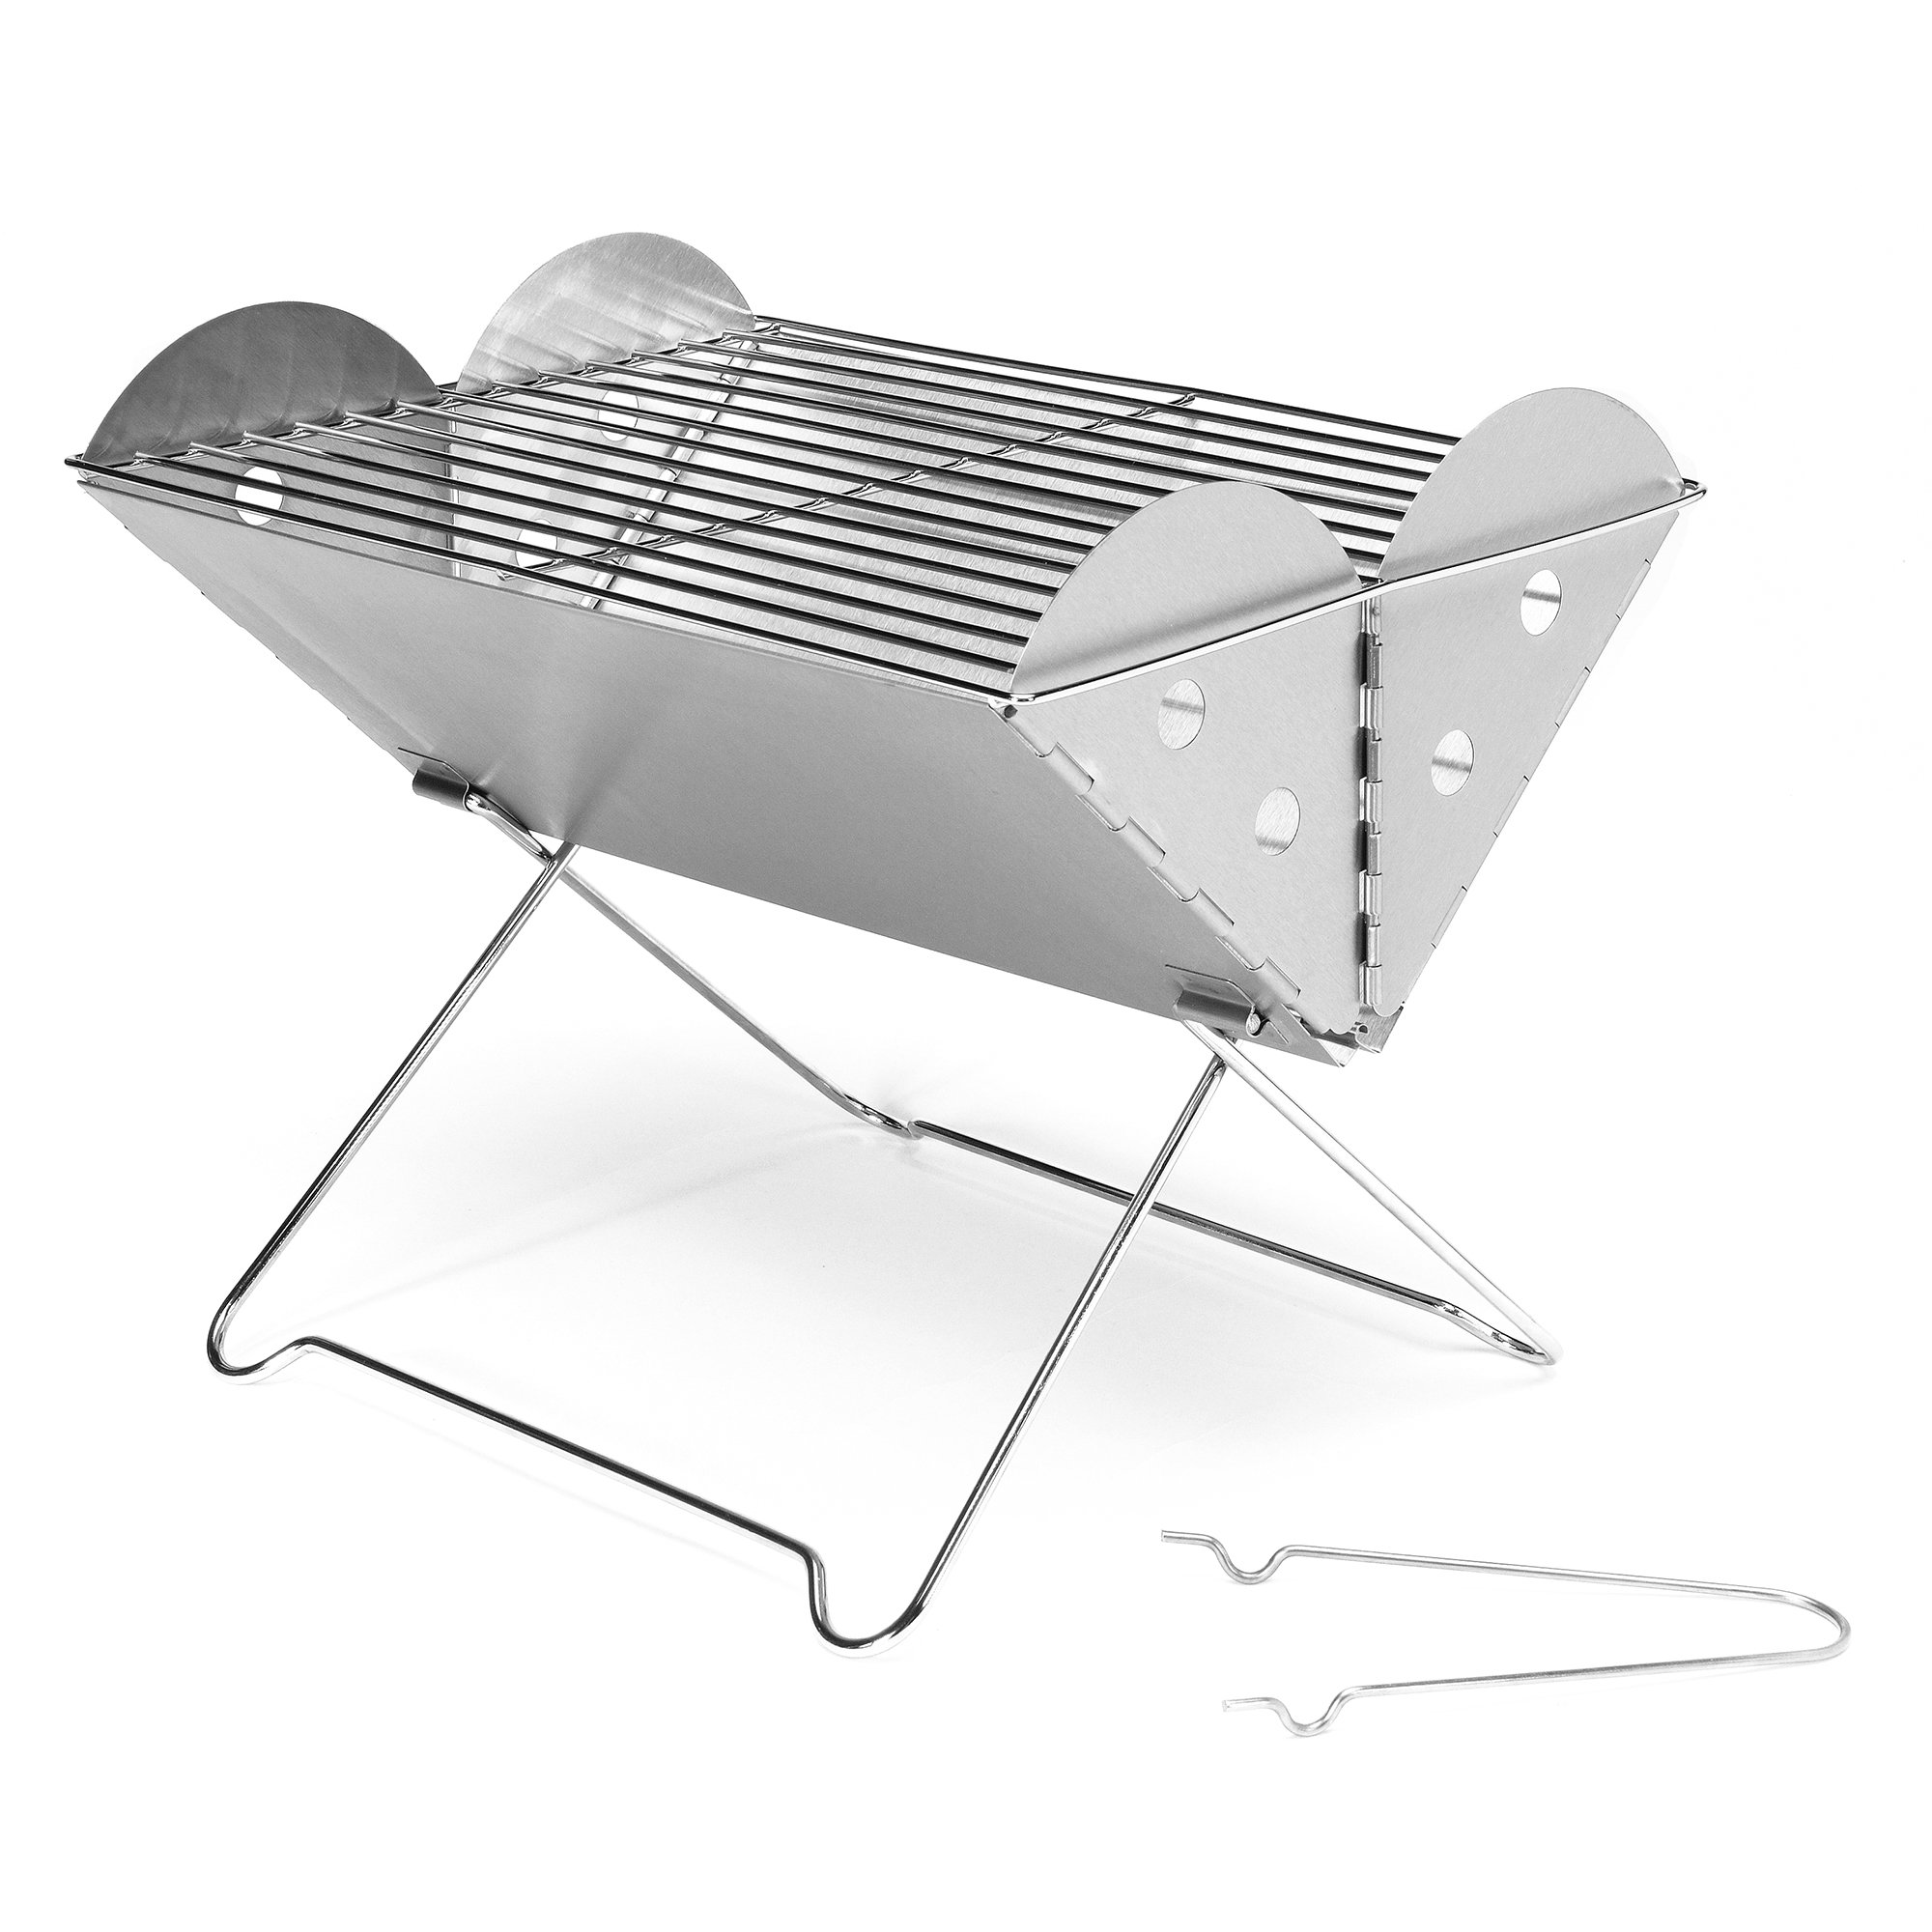 Chiefmax Portable Folding Camping Grill - Mini Stainless Steel Charcoal Barbecue Grill (Mini)